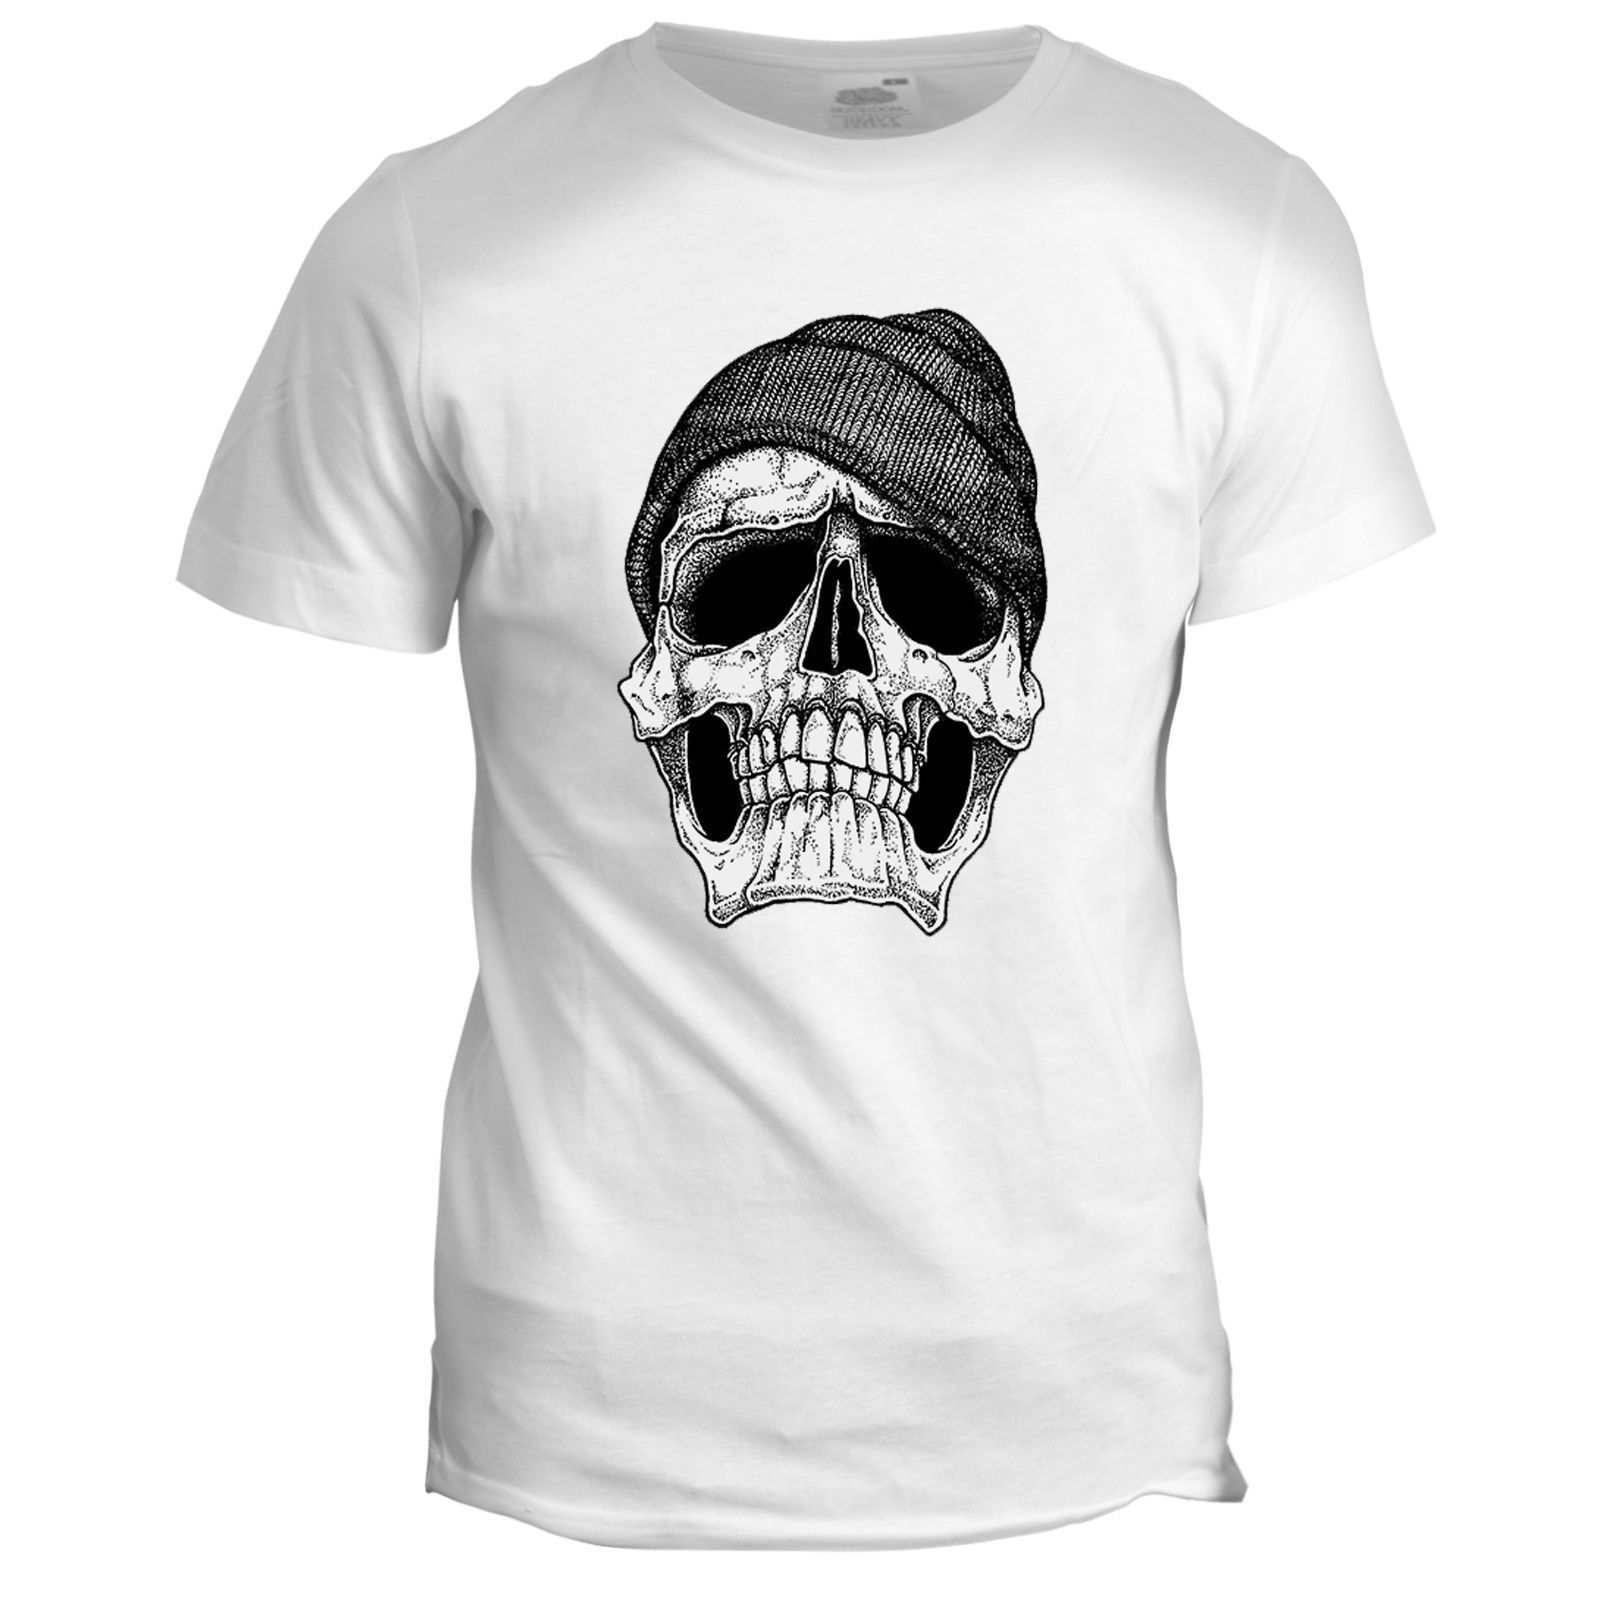 2018 Hot sale Fashion Mens Dope Skull Tee Inspired Motorbike Biker Tattoo Tee shirt